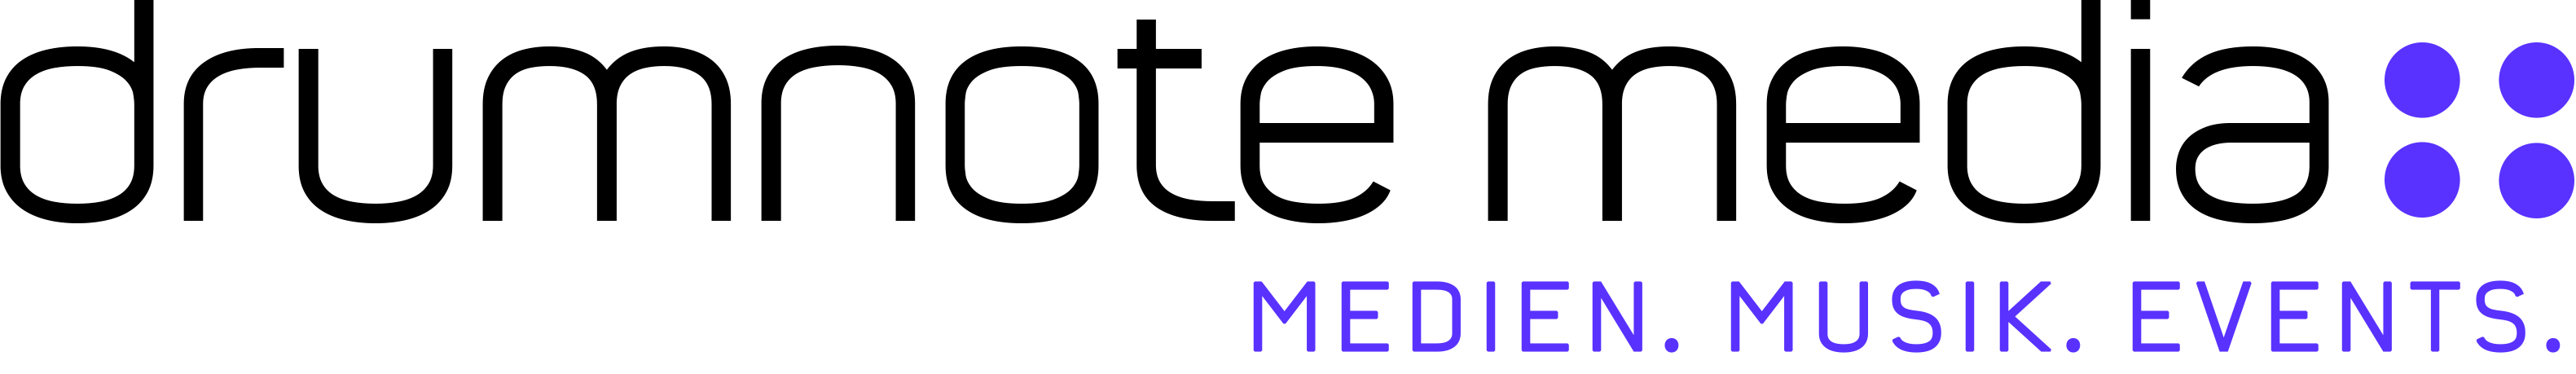 drumnote_media_logo_black_website_purple